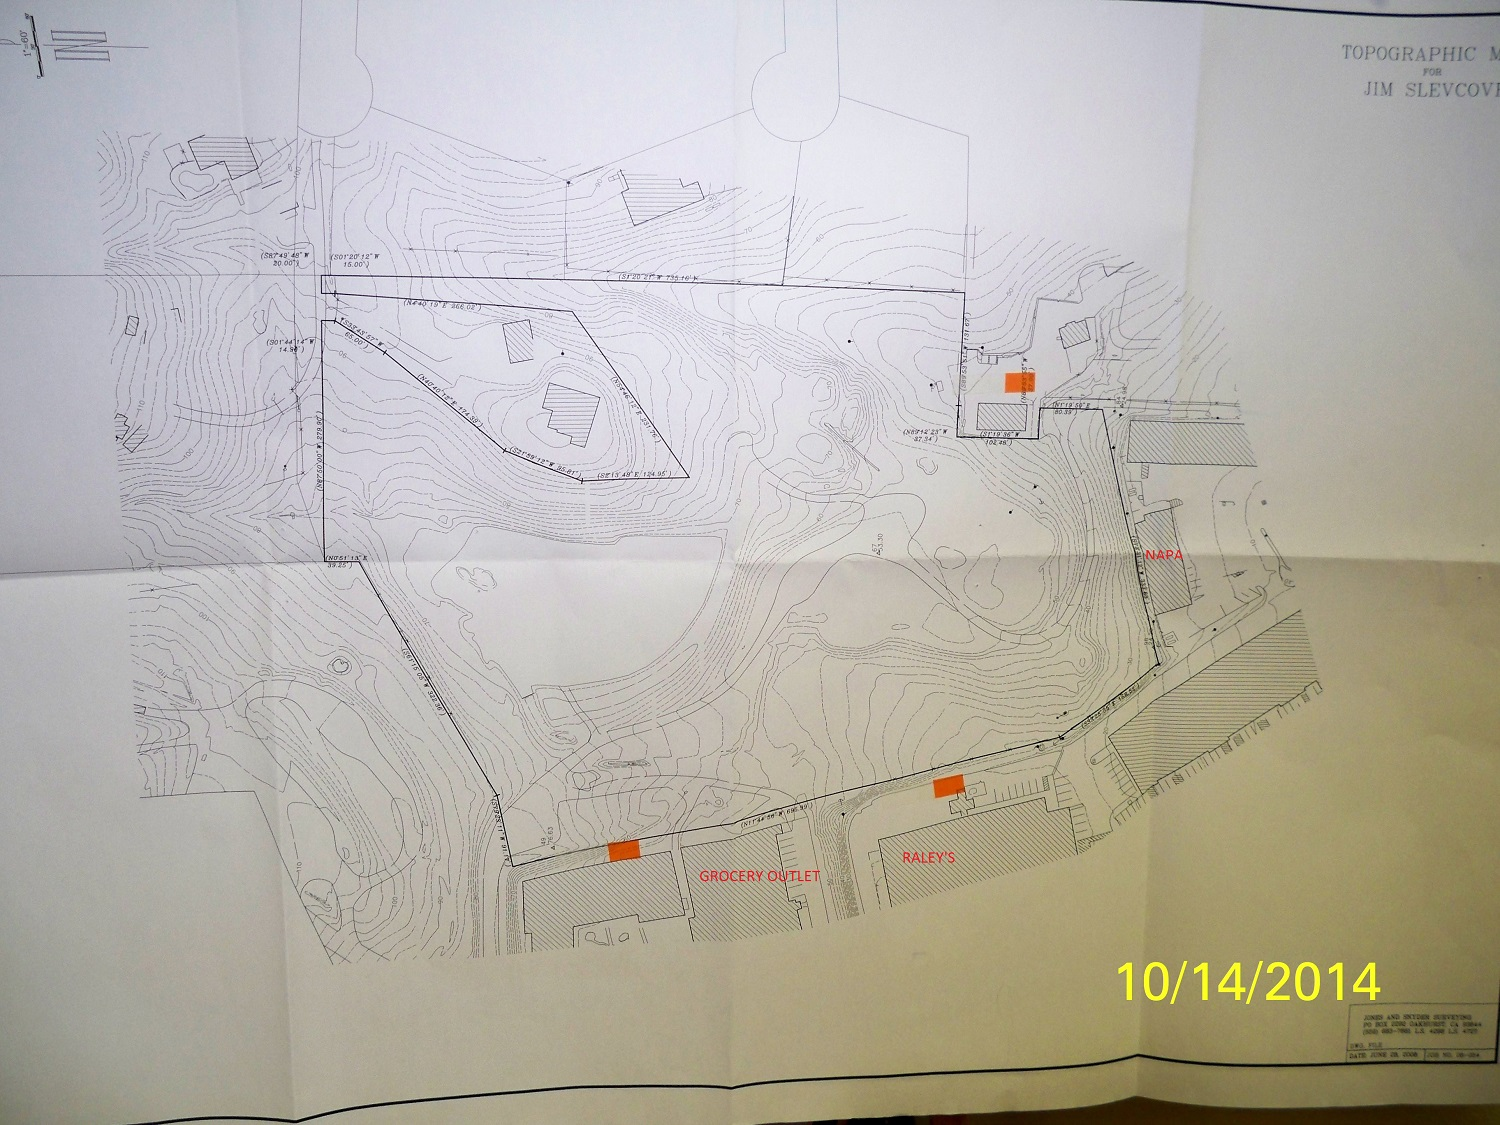 Cemetery expansion map